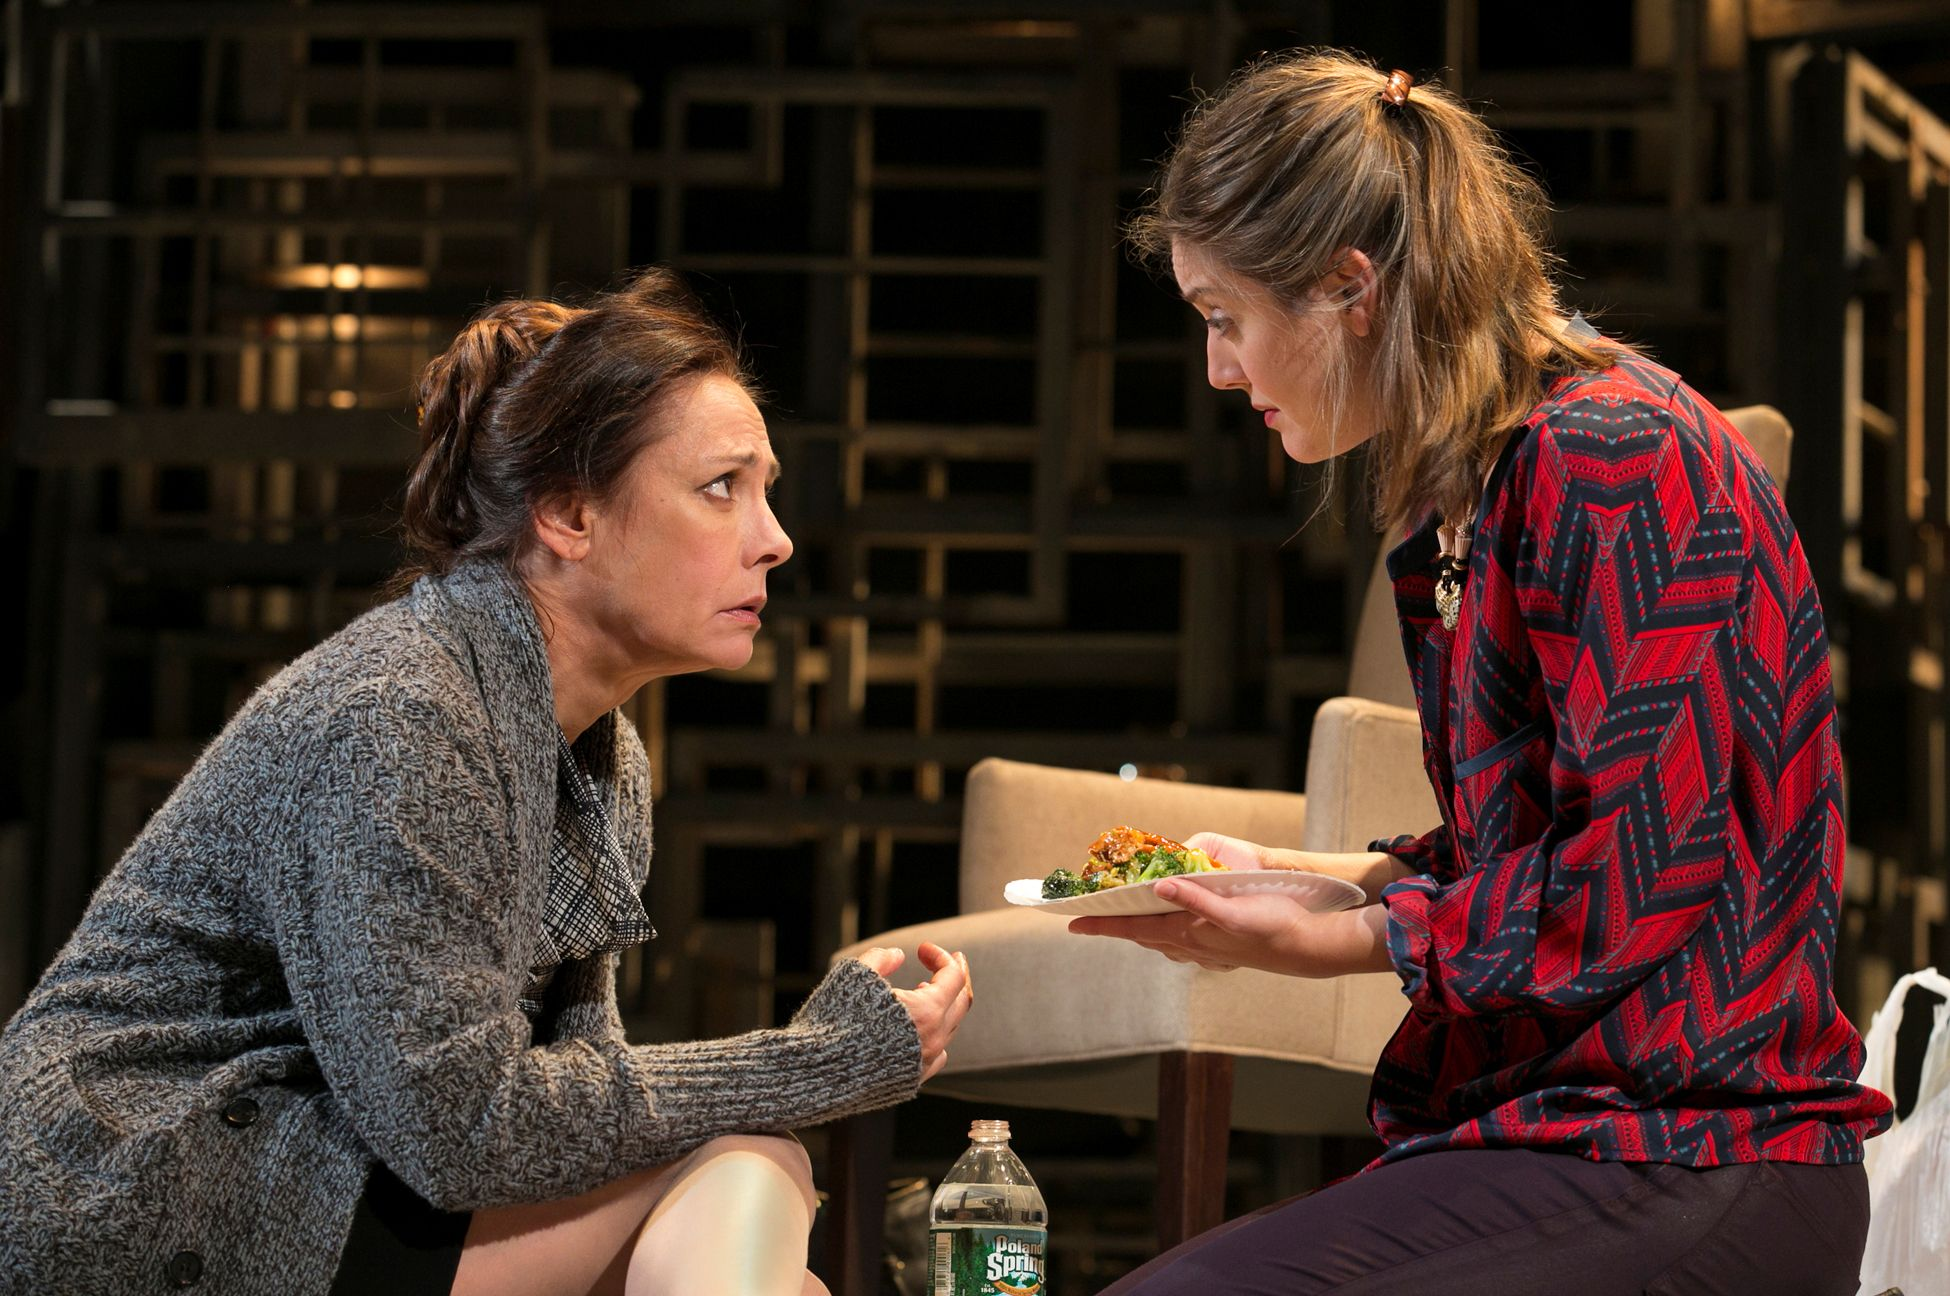 Tony Nominee Laurie Metcalf And Her Real Life Daughter Zoe